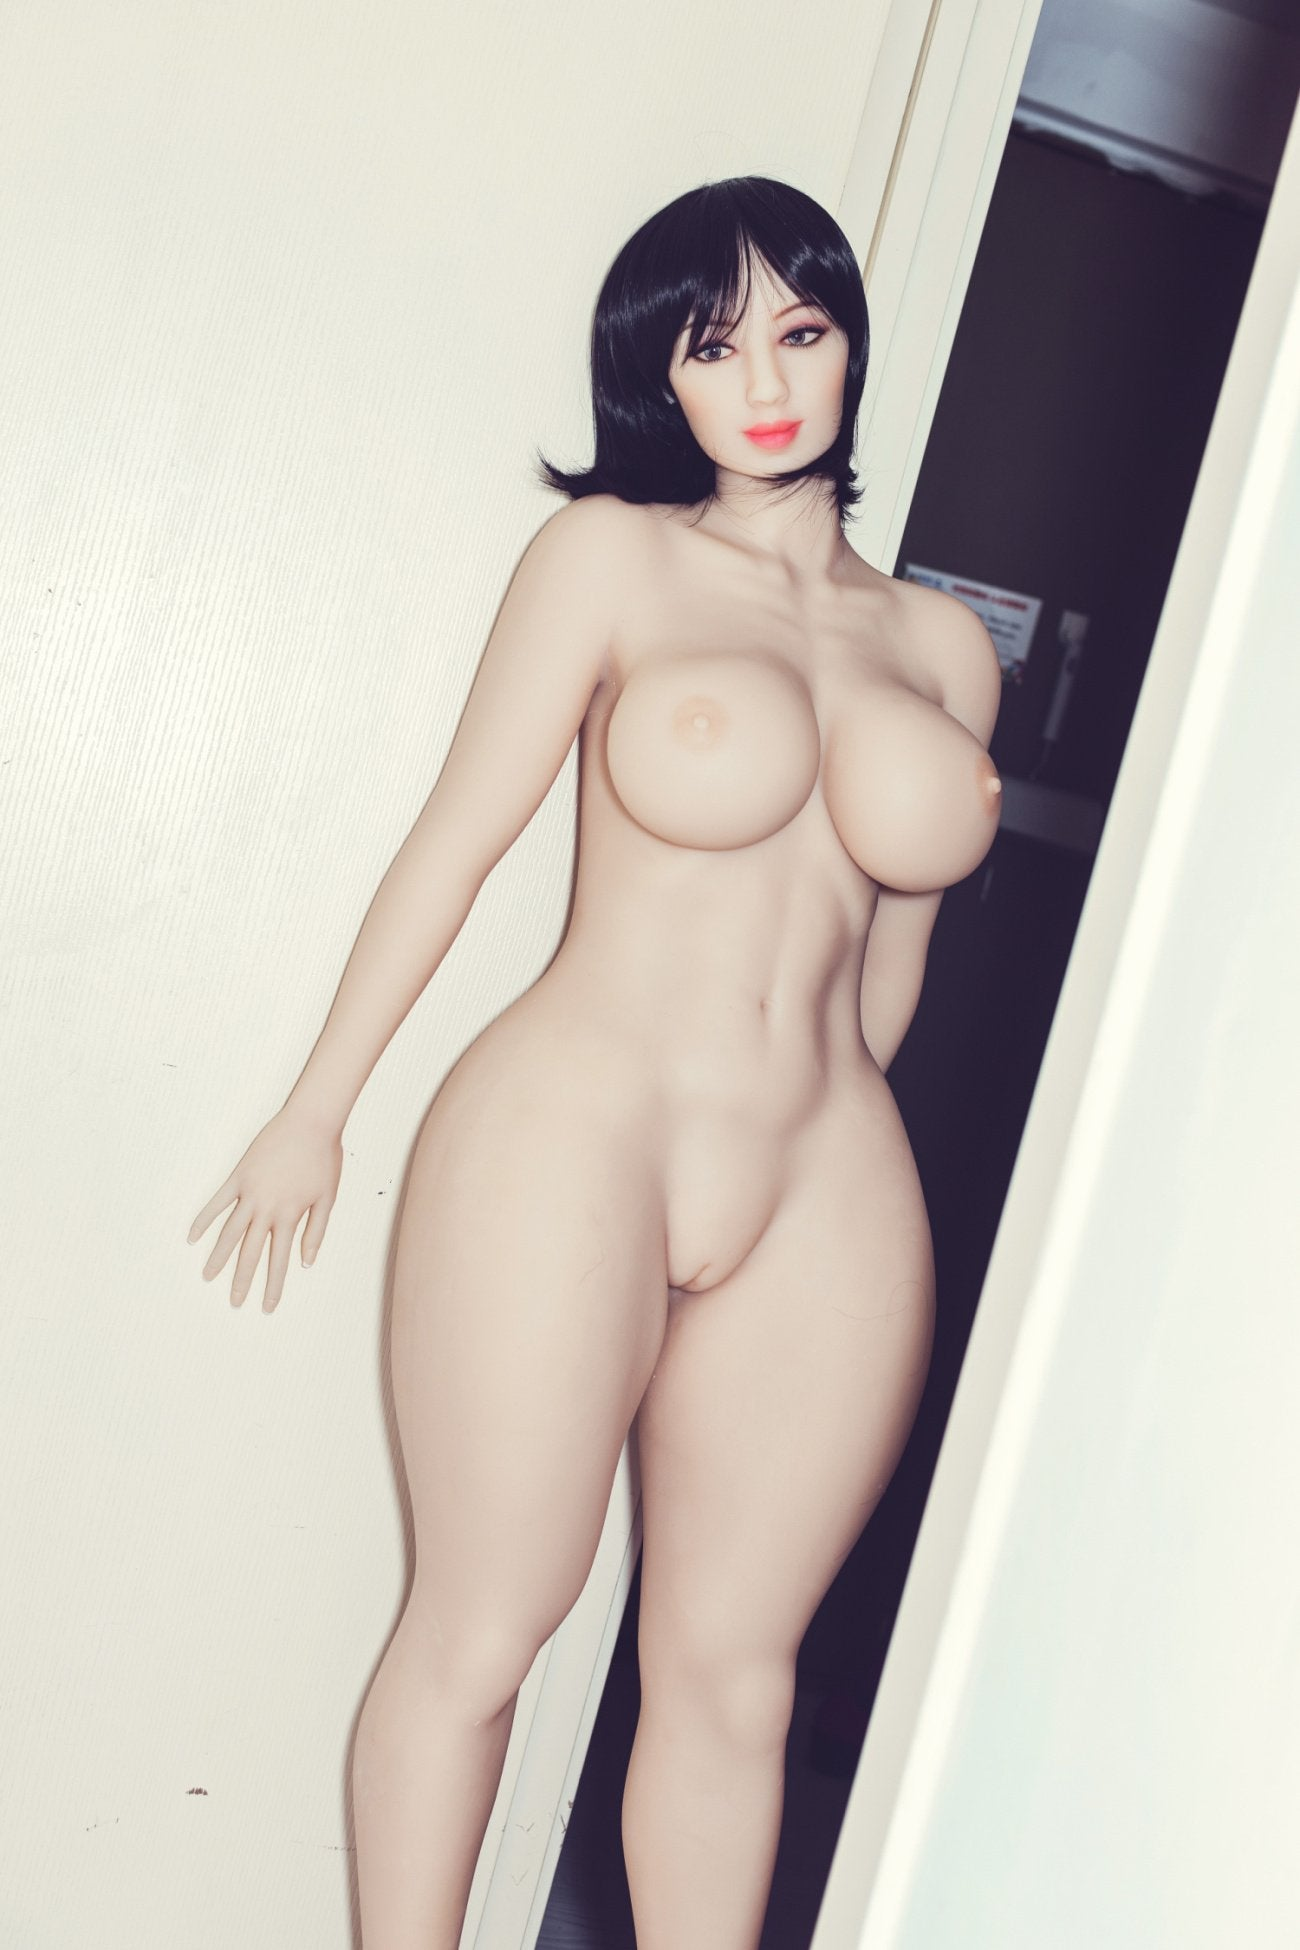 shar 163cm black hair curvy big boobs tpe wm bbw sex doll(10)